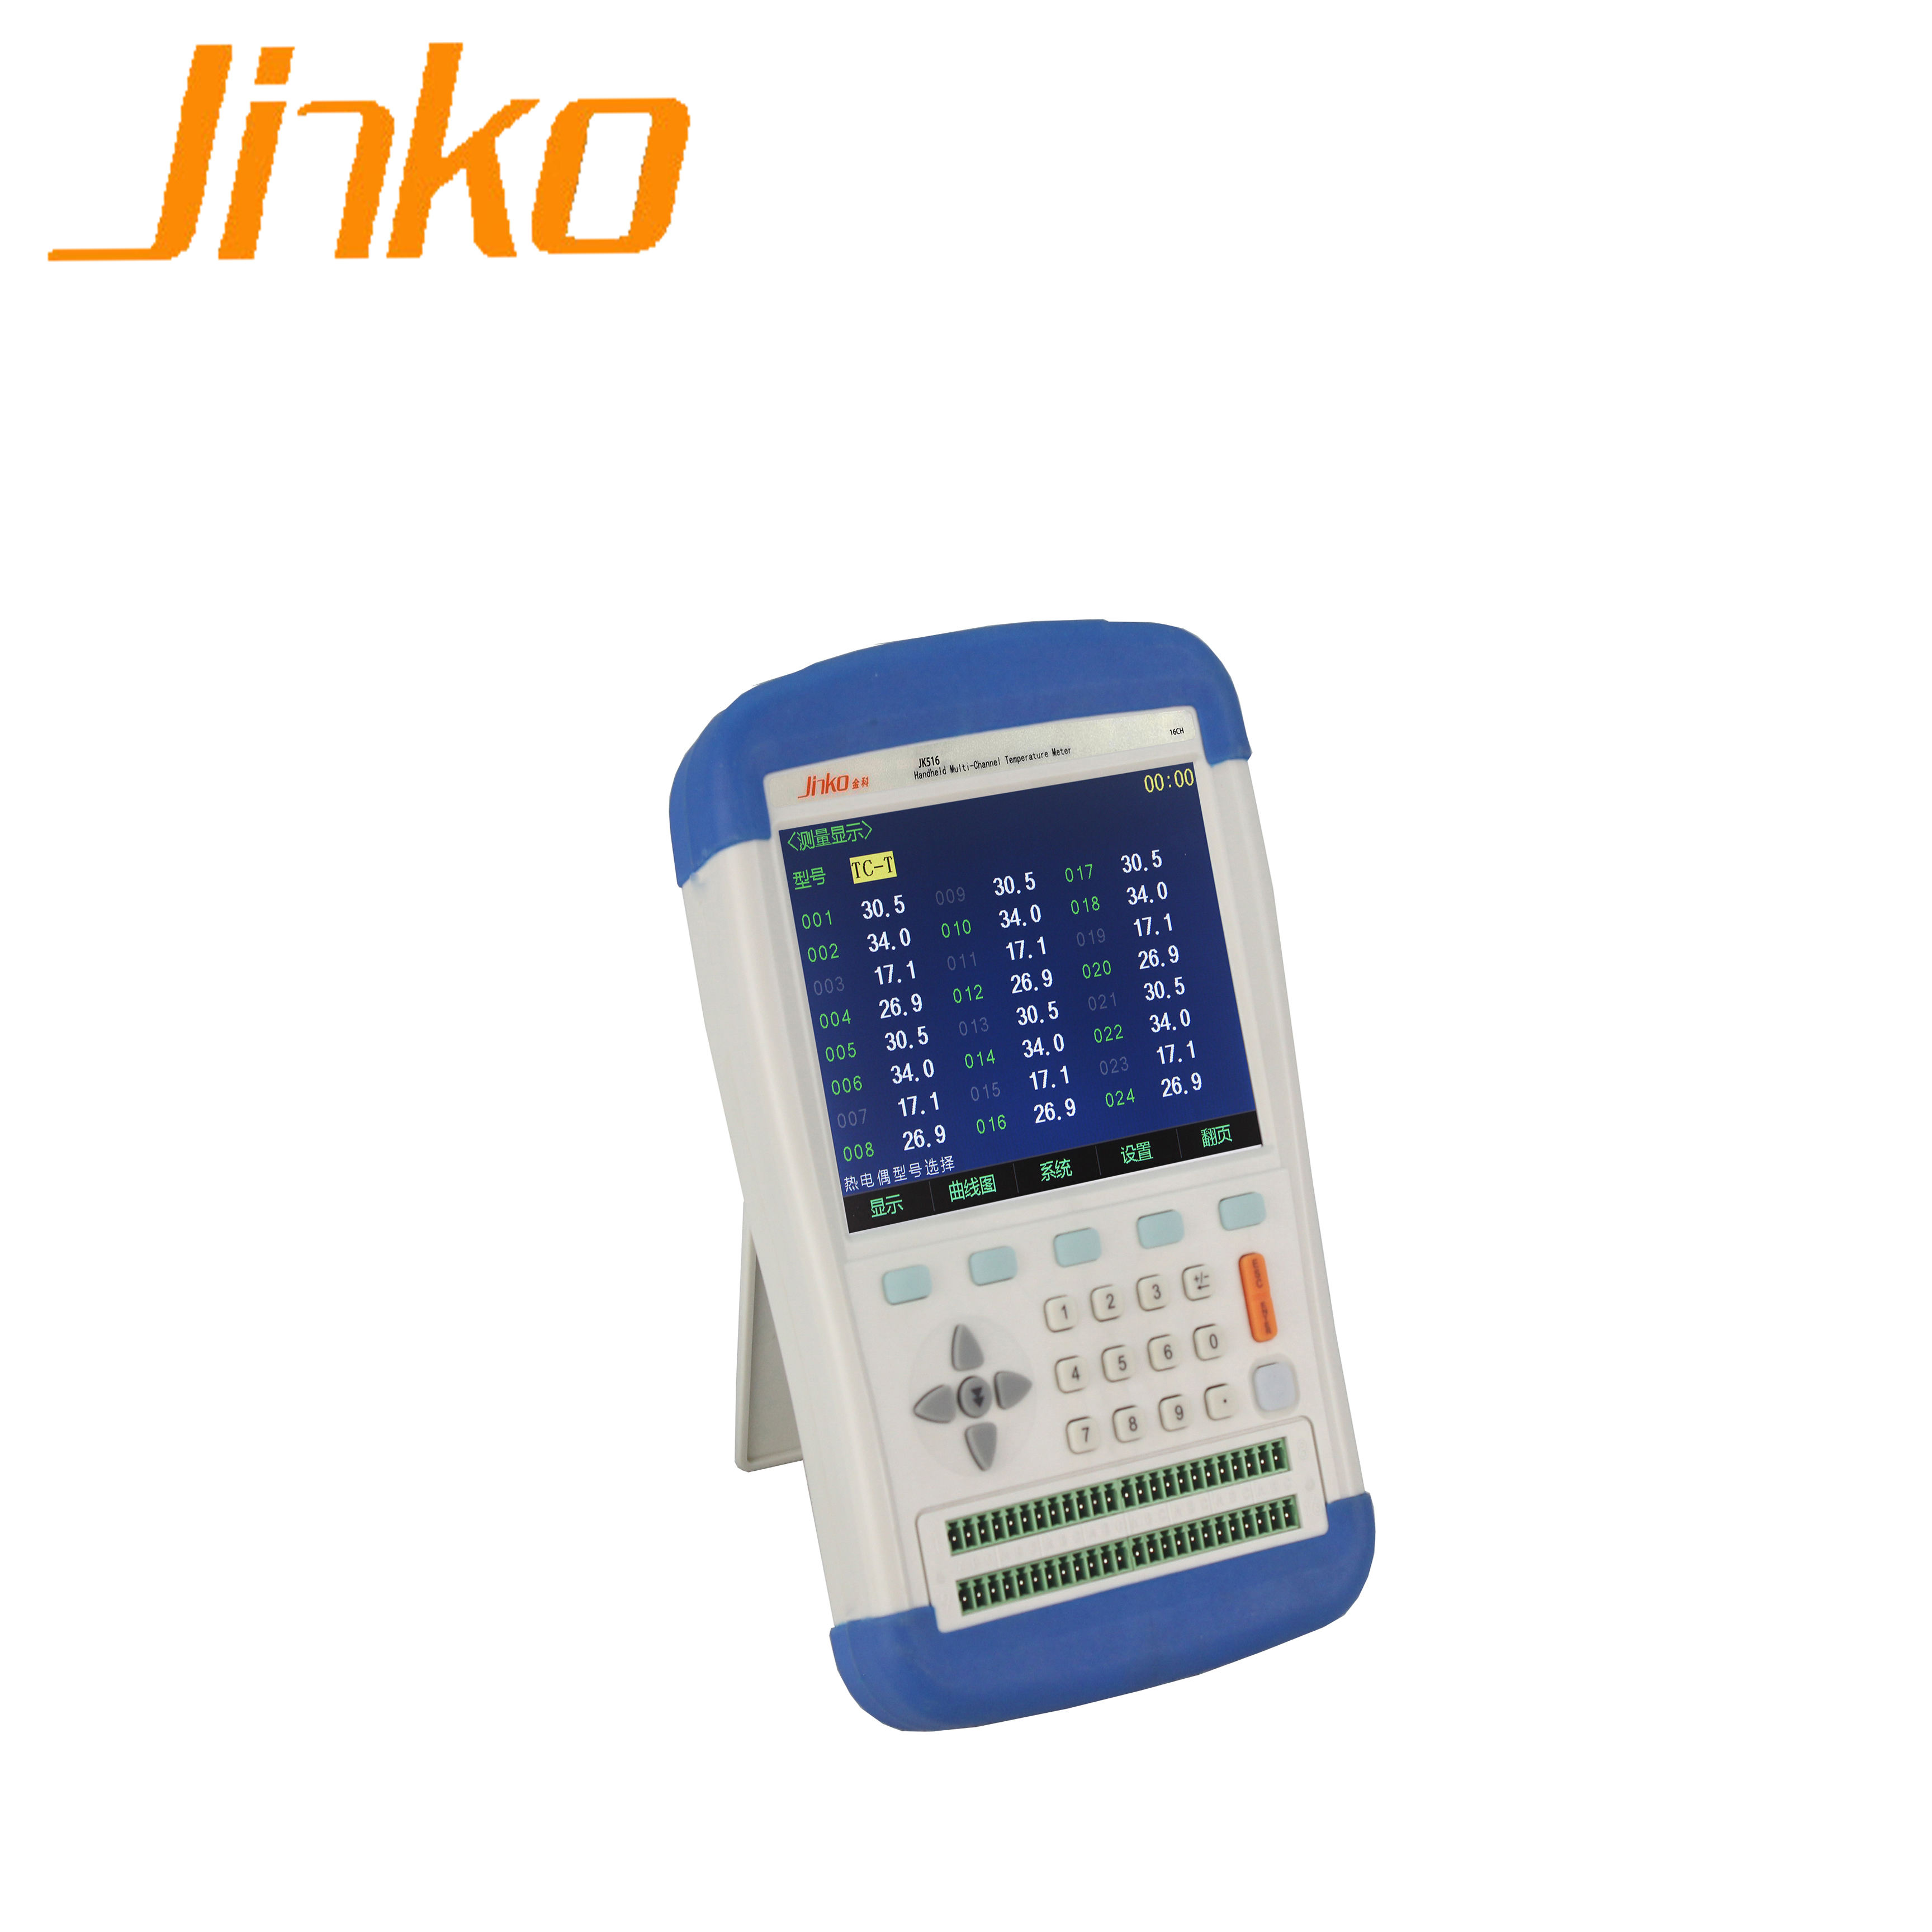 Jinko JK516 Multi channel temperature meter with Data Logger Function best price digital temperature meter